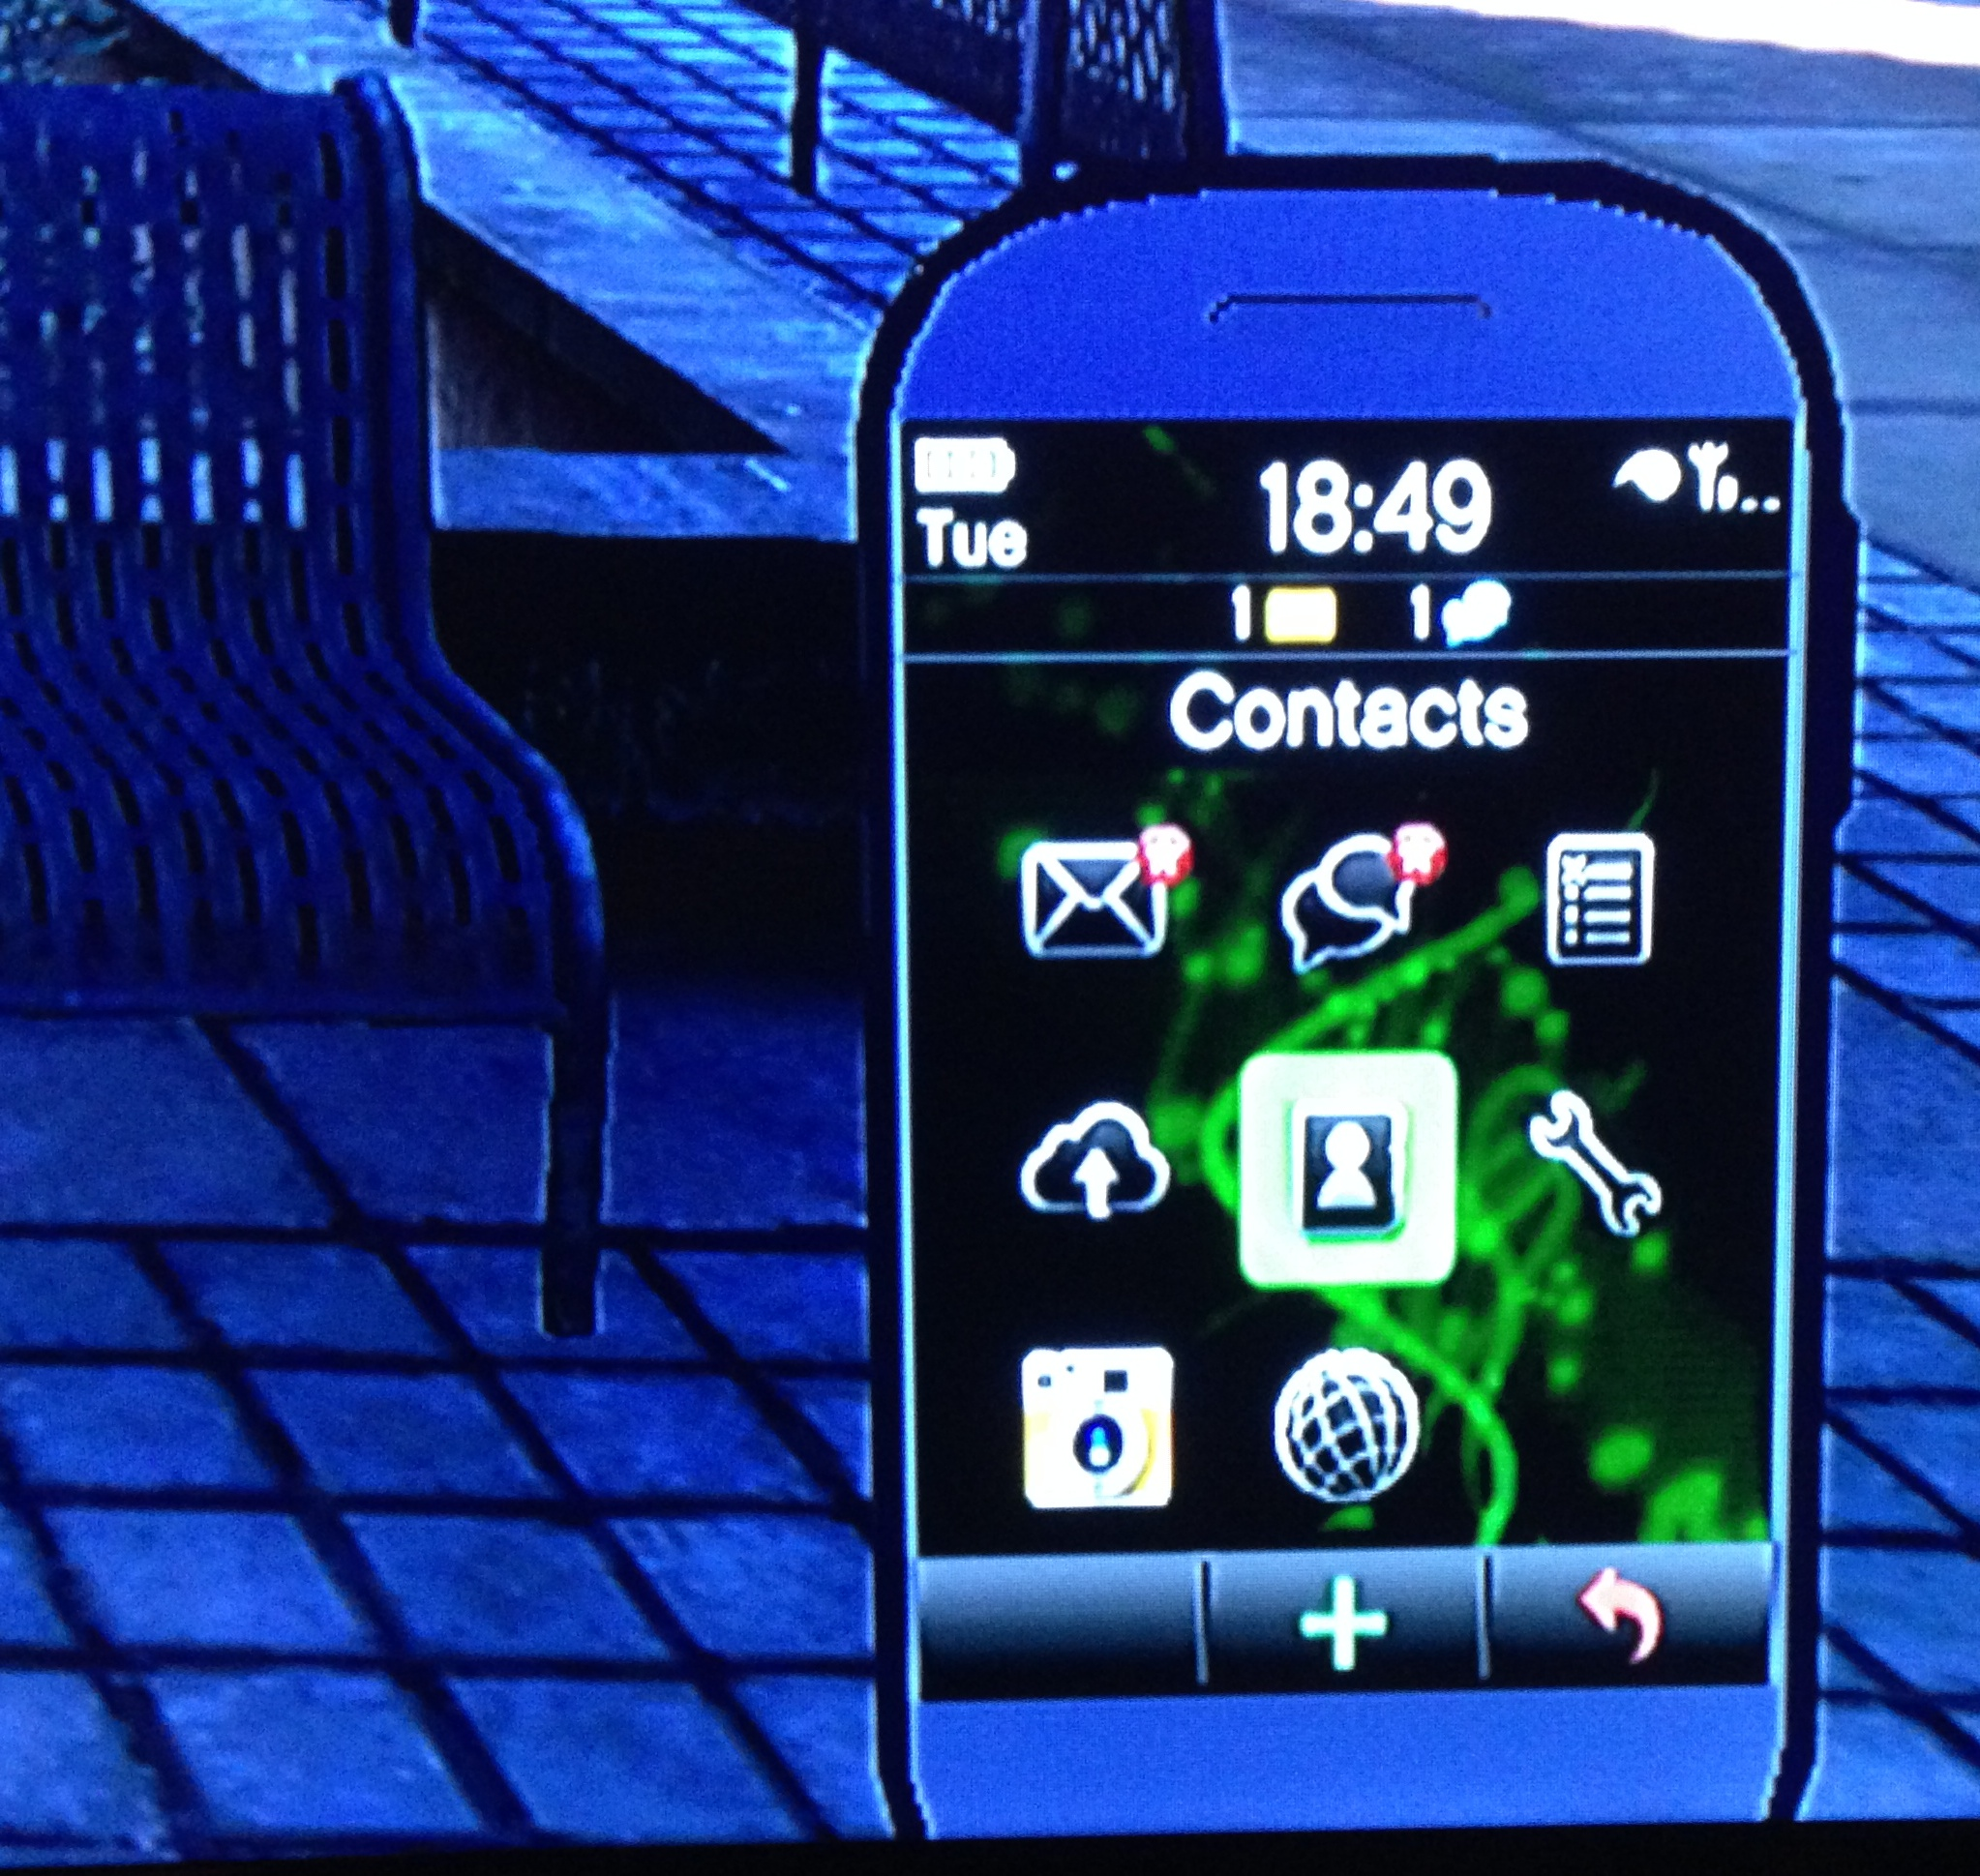 Phone Gta On Android Phone gta 5 phones mock iphone android windows phone users a closer look at 5s smartphone